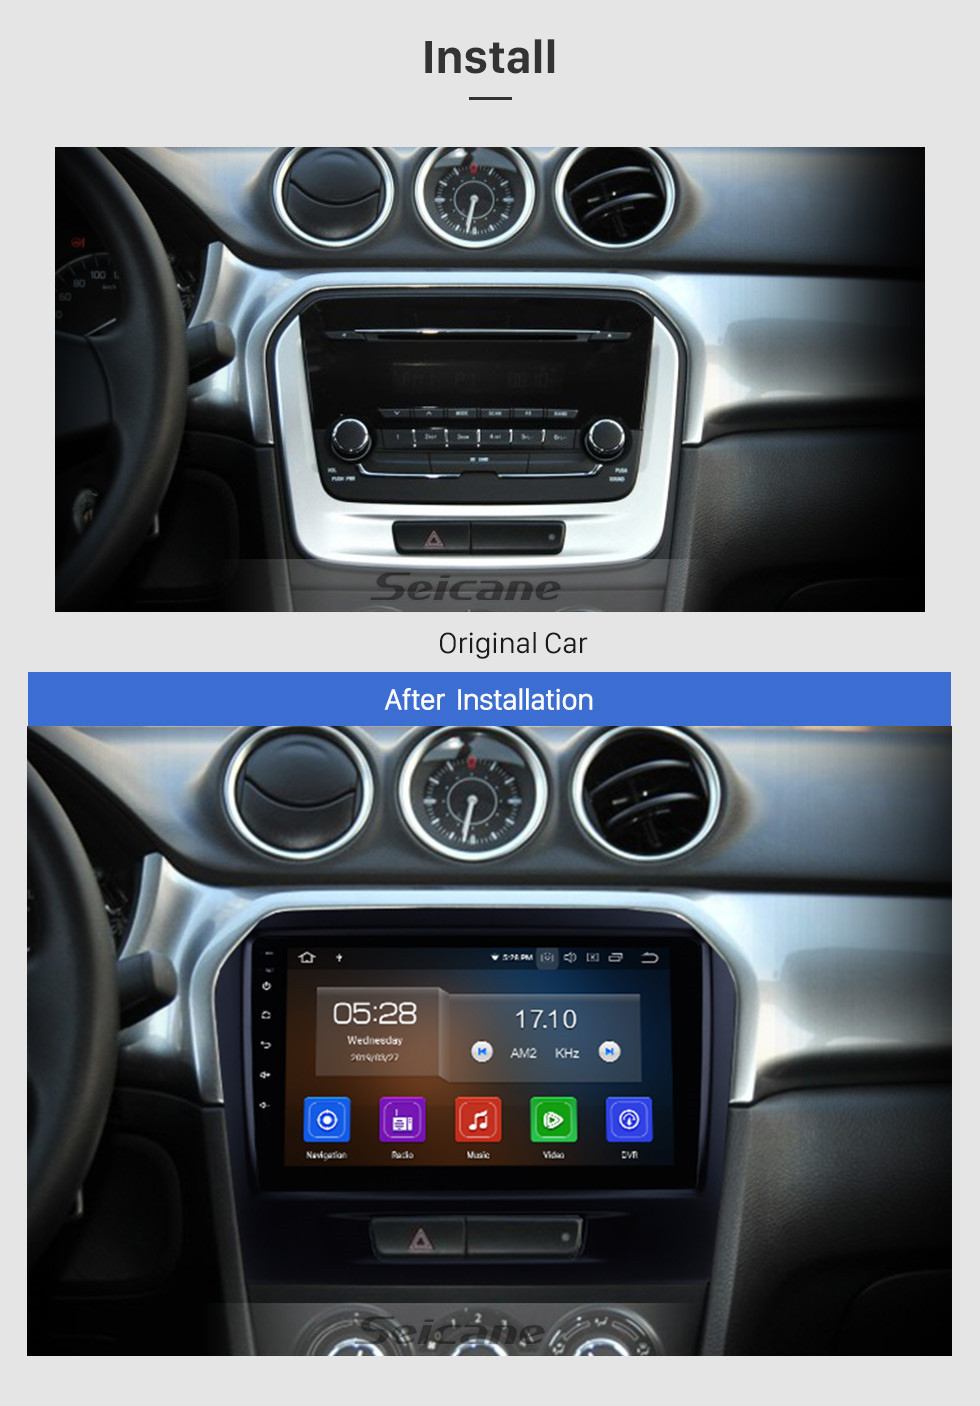 Seicane Android 10.0 2015 2016 SUZUKI GRAND VITARA Radio Replacement Navigation System 9 Inch Touch Screen Bluetooth MP3 Mirror Link OBD2 3G WiFi Steering Wheel Control